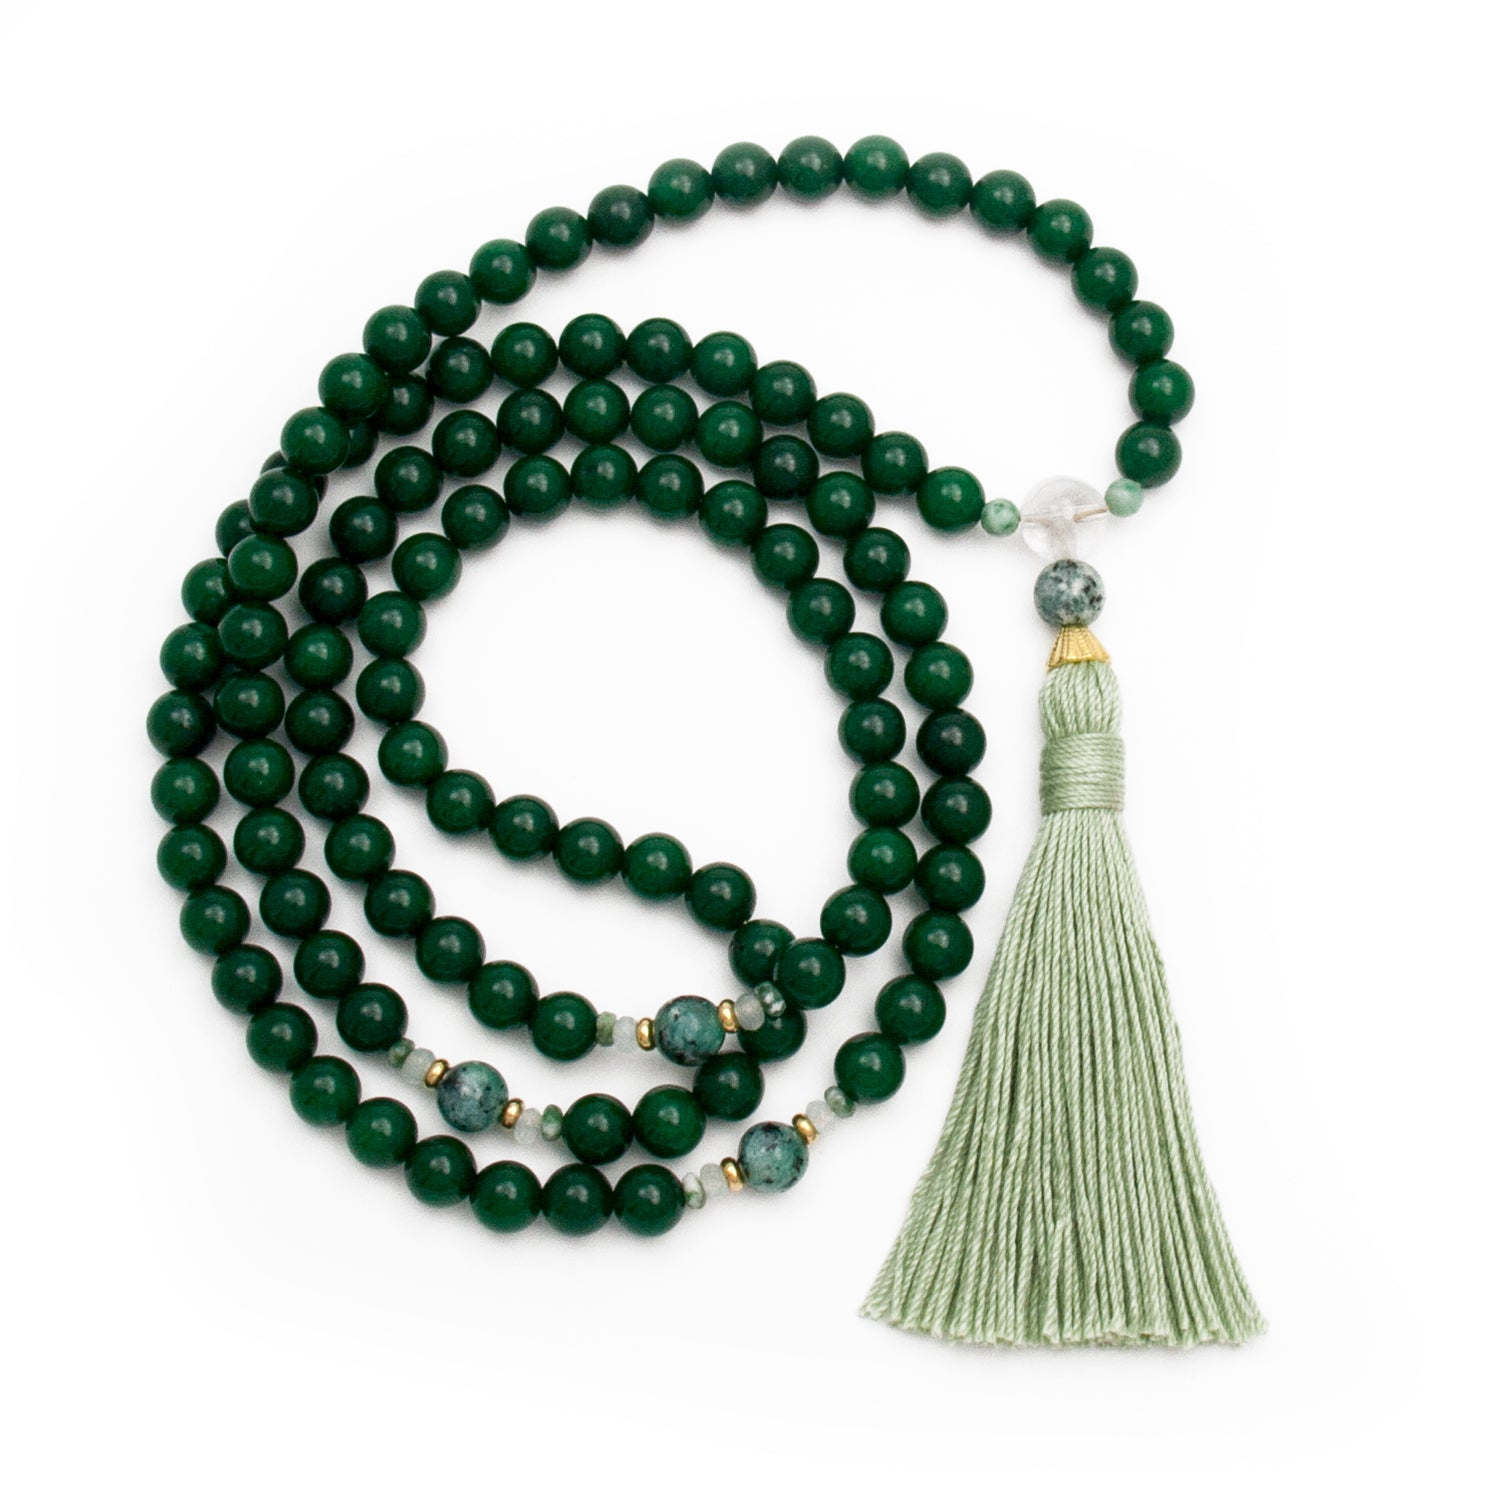 Jade Mala Beads by Golden Lotus Mala